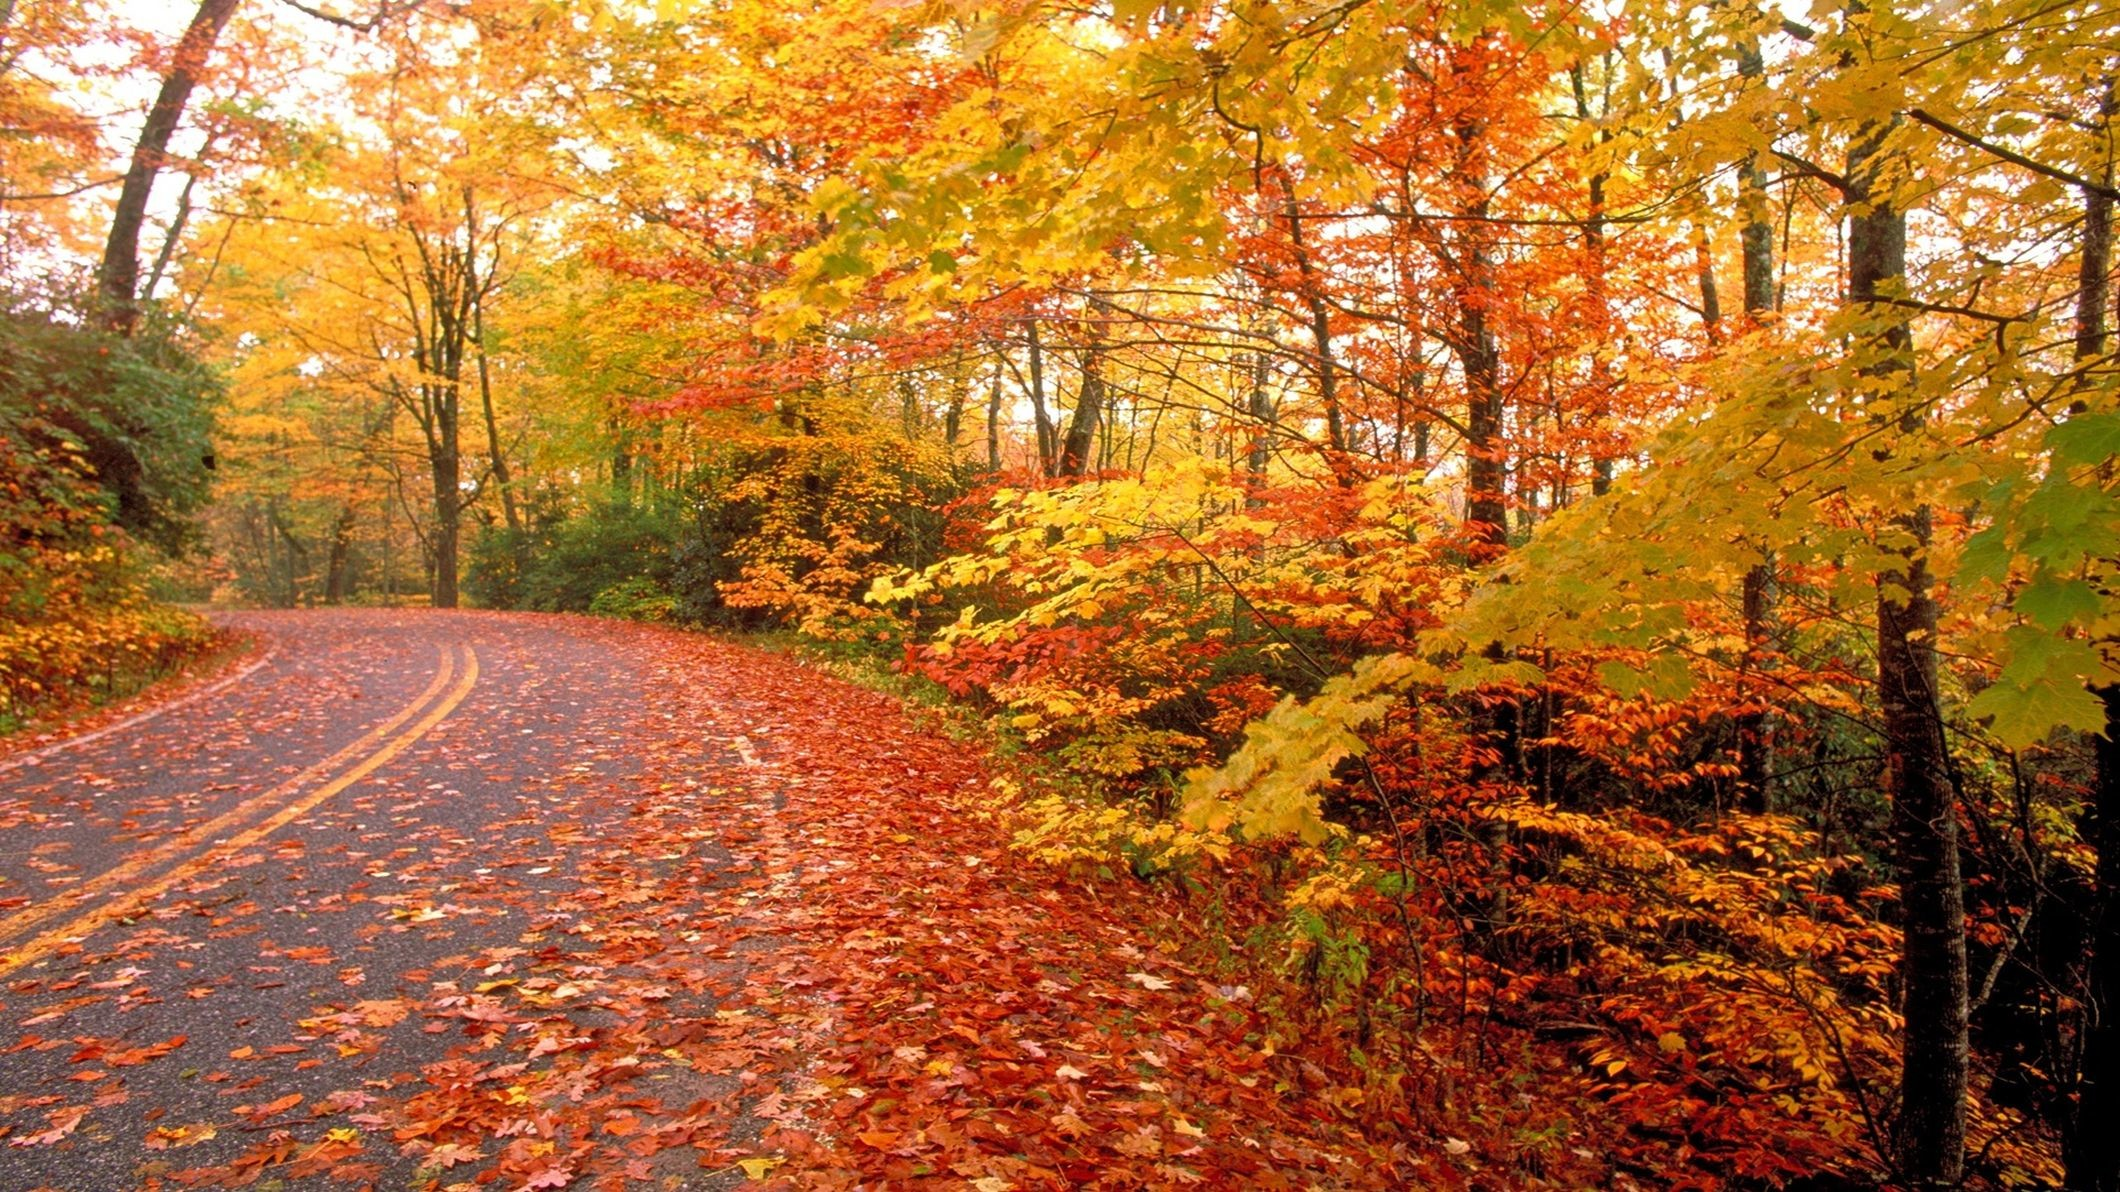 Fall Wallpaper For Desktop Download Free Full Hd: Cool Fall Backgrounds (69+ Images